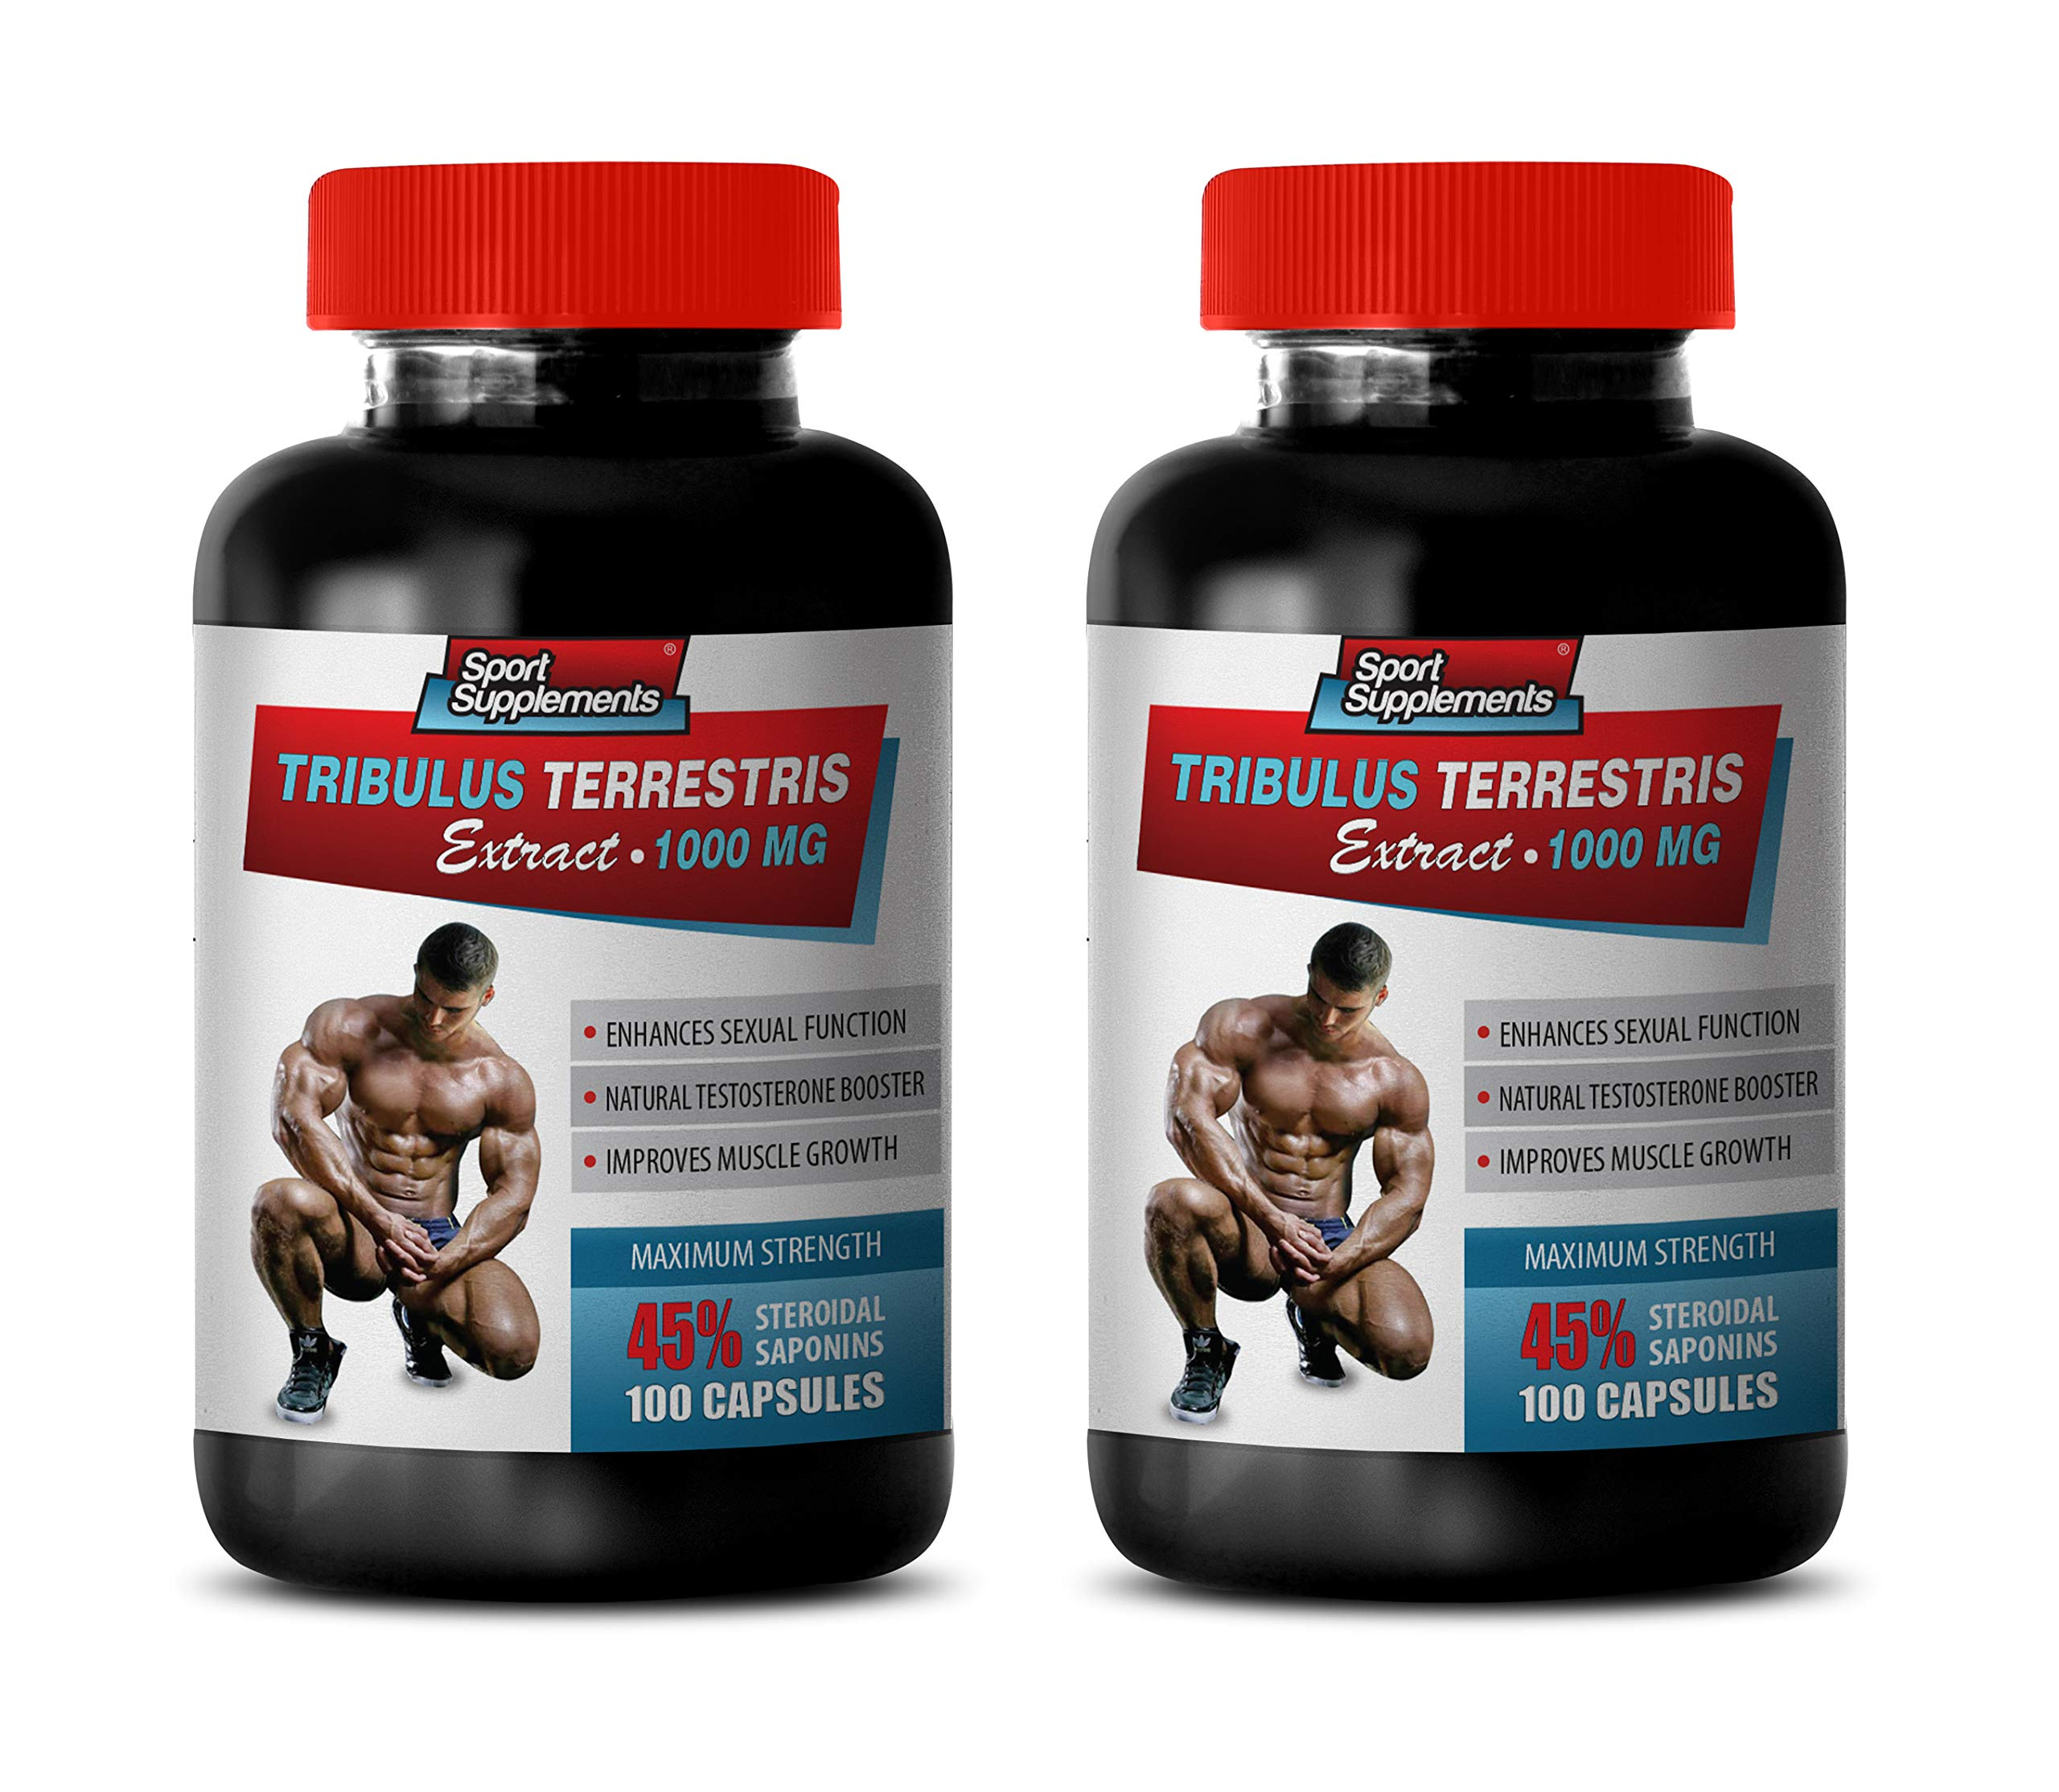 libido Care Extract - TRIBULUS TERRESTRIS Extract 1000MG - 45% STEROIDAL SAPONINS - Maximum Strength - tribulus Nutrition - 2 Bottles 200 Capsules by Sport Supplements